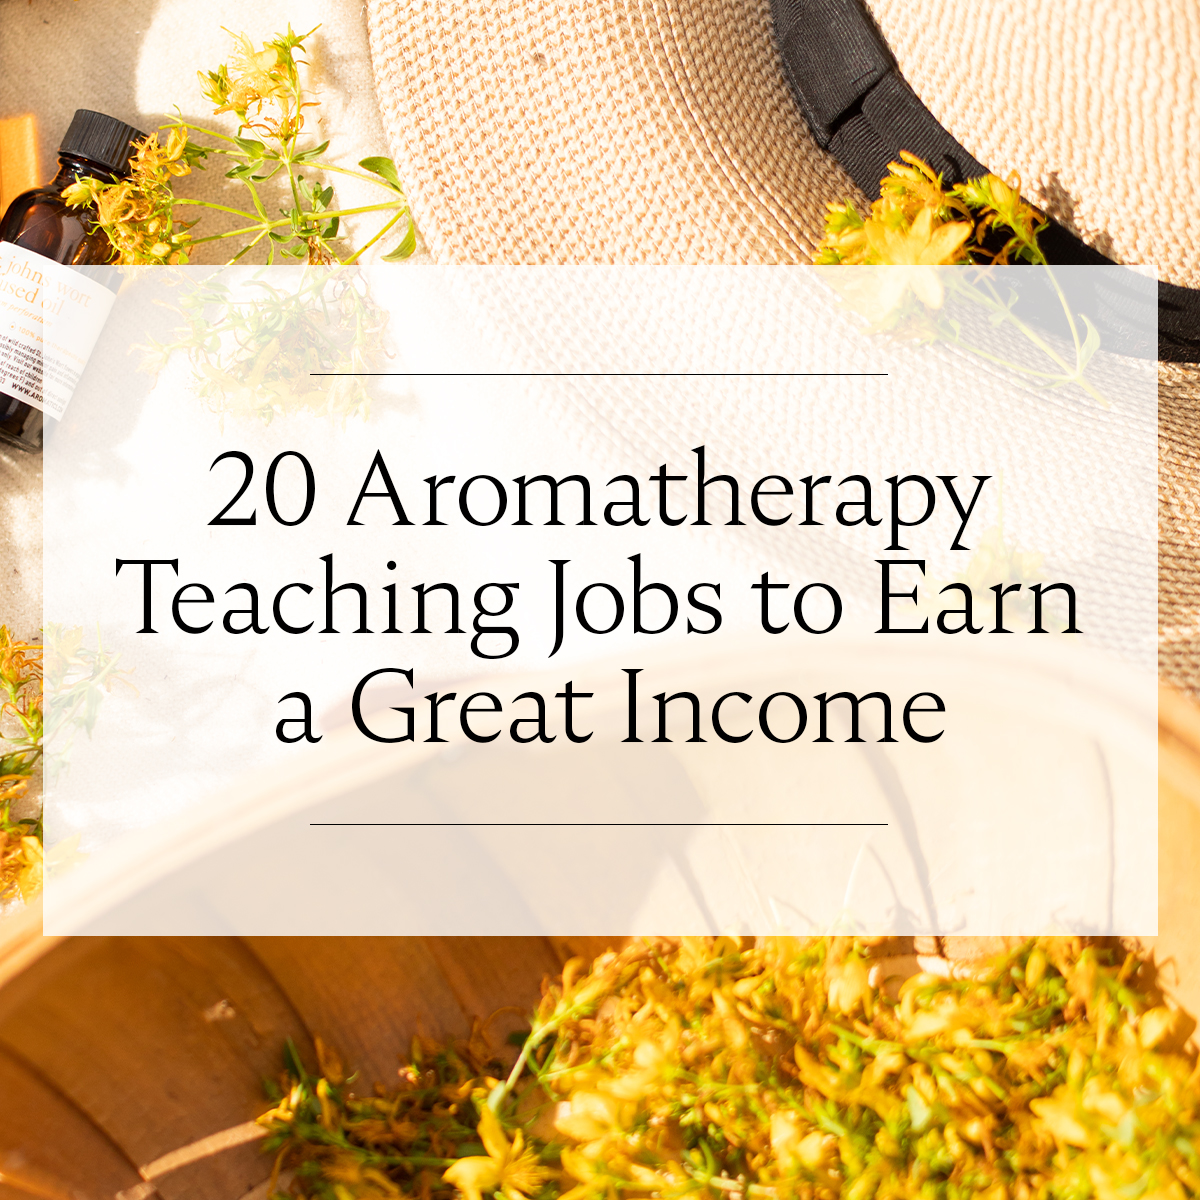 20 Aromatherapy Teaching Jobs to Earn a Great Income